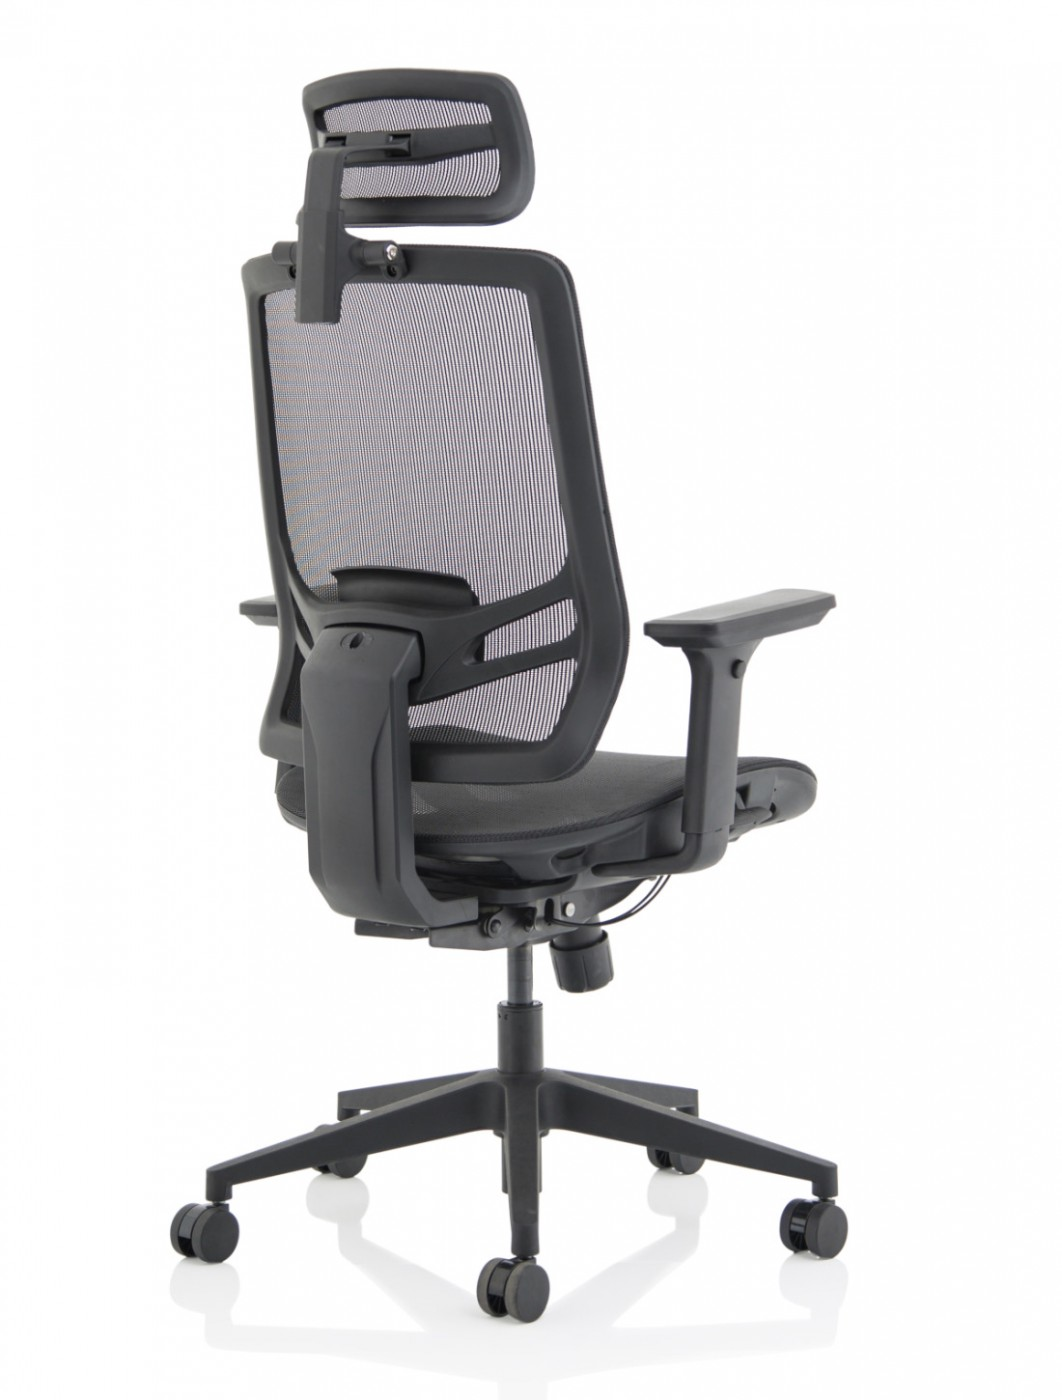 Mesh Office Chair Black Ergo Twist Chair with Headrest KC0299 by Dynamic